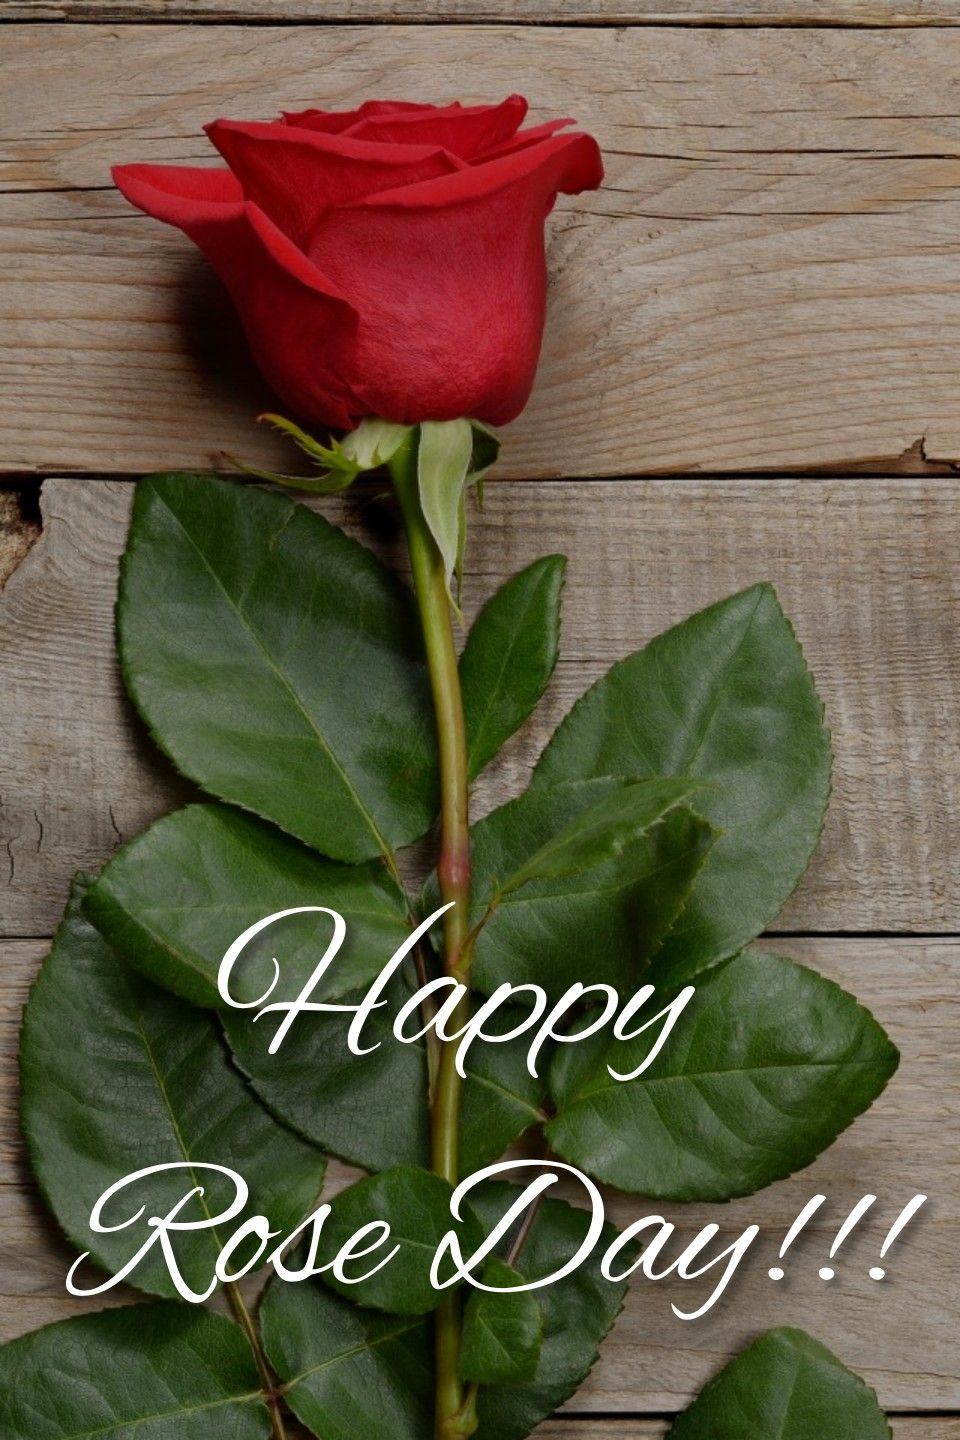 Rose Day Happy Rose Day Wallpaper February Valentines Happy Rose Day